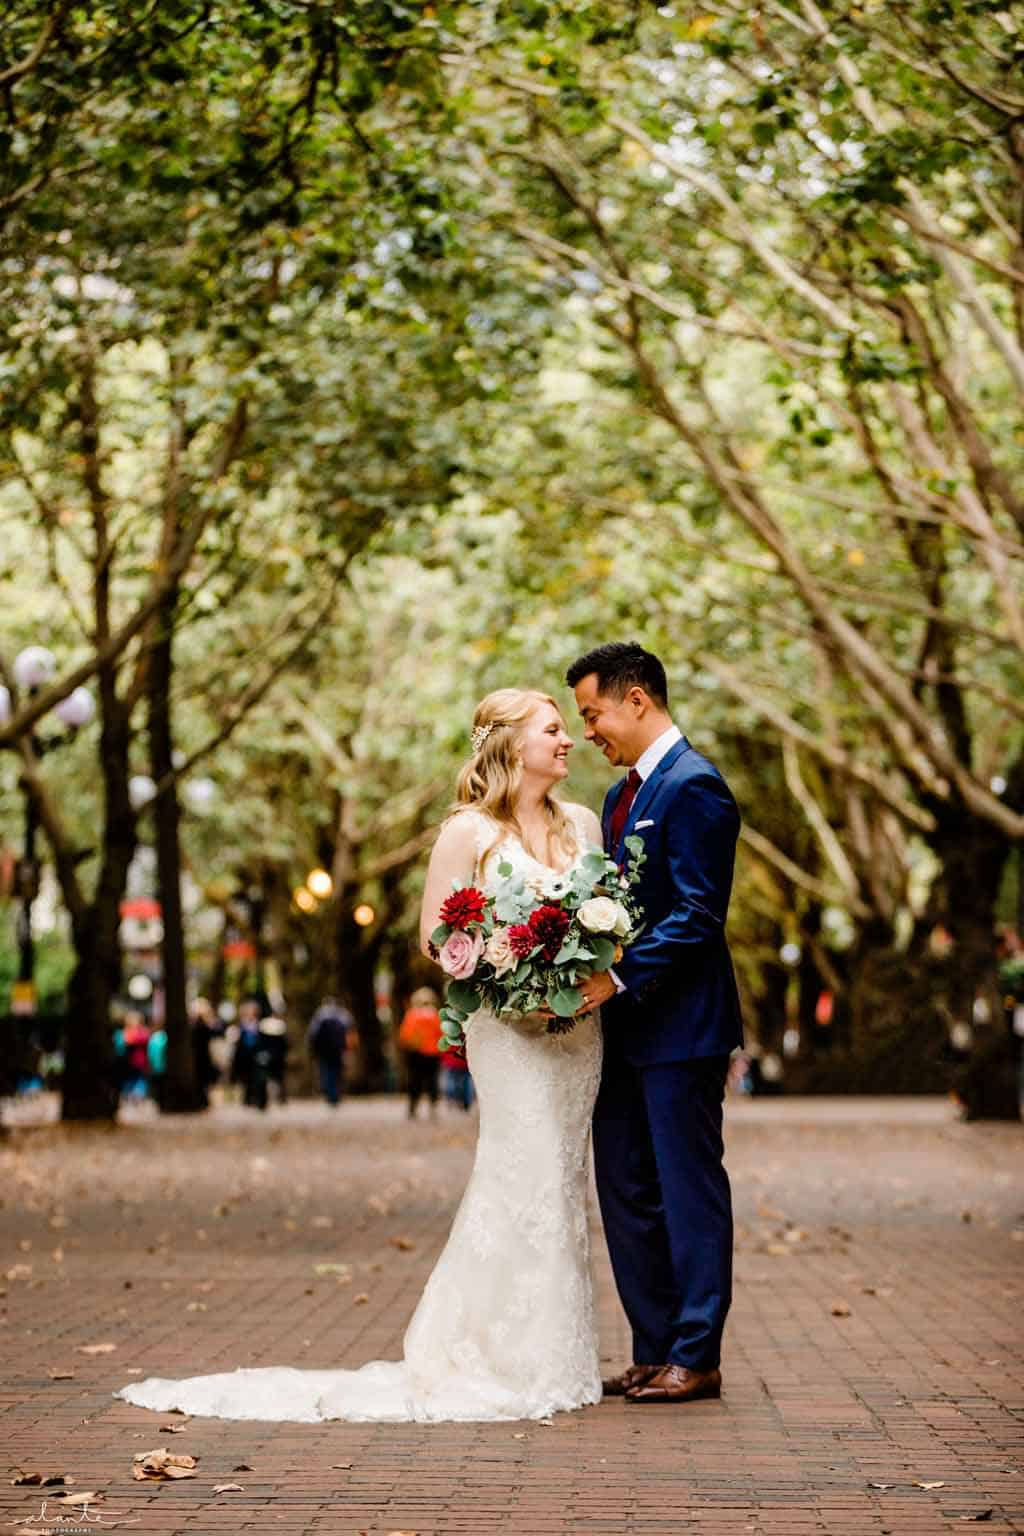 Bride and groom posing under tall trees with wedding bouquet